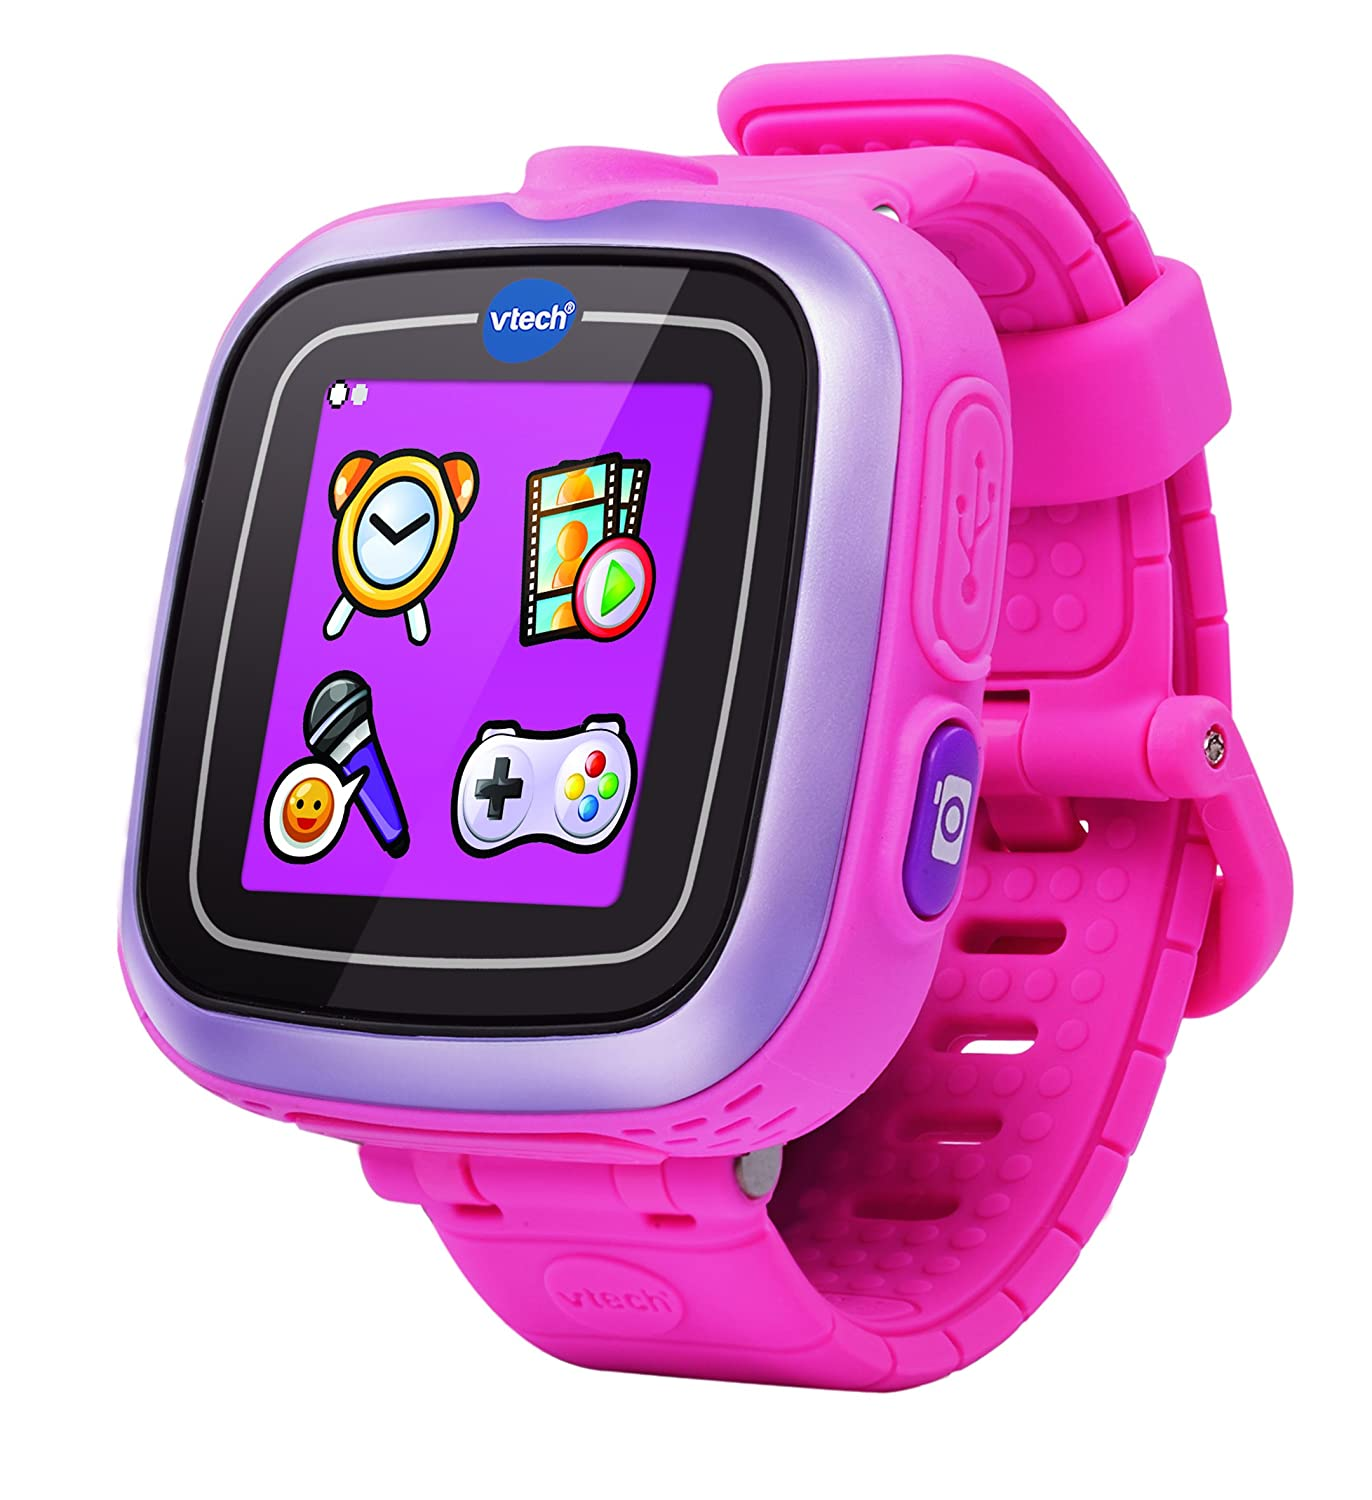 Kidizoom Vtech Smart Watch Plus - Rose (Langue Anglaise) [Import Royaume-Uni]: Amazon.fr: Jeux et Jouets